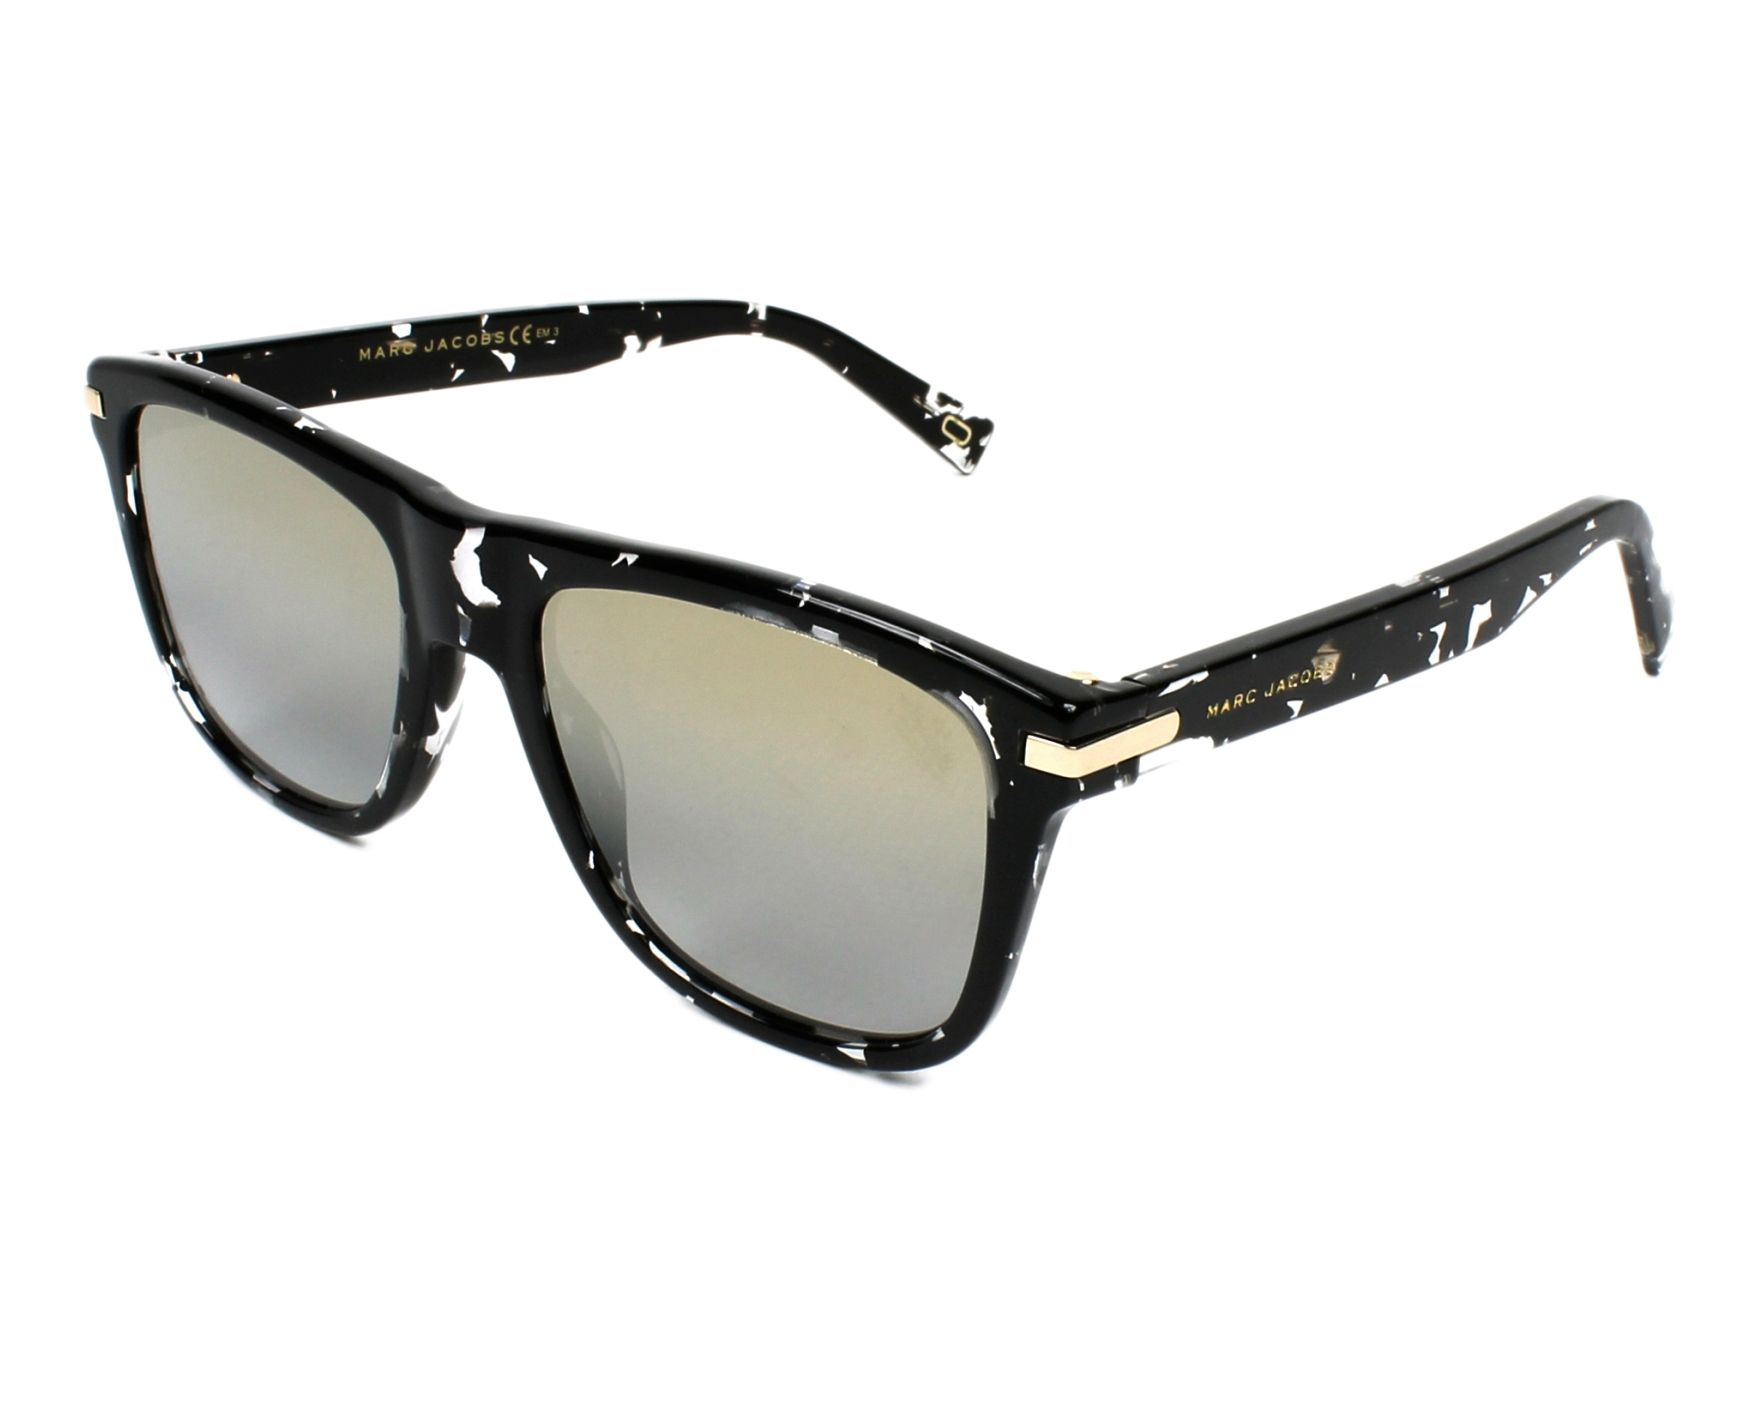 be2691bfeaa Sunglasses Marc Jacobs MARC-185-S 9WZ 9F 54-19 Black Crystal